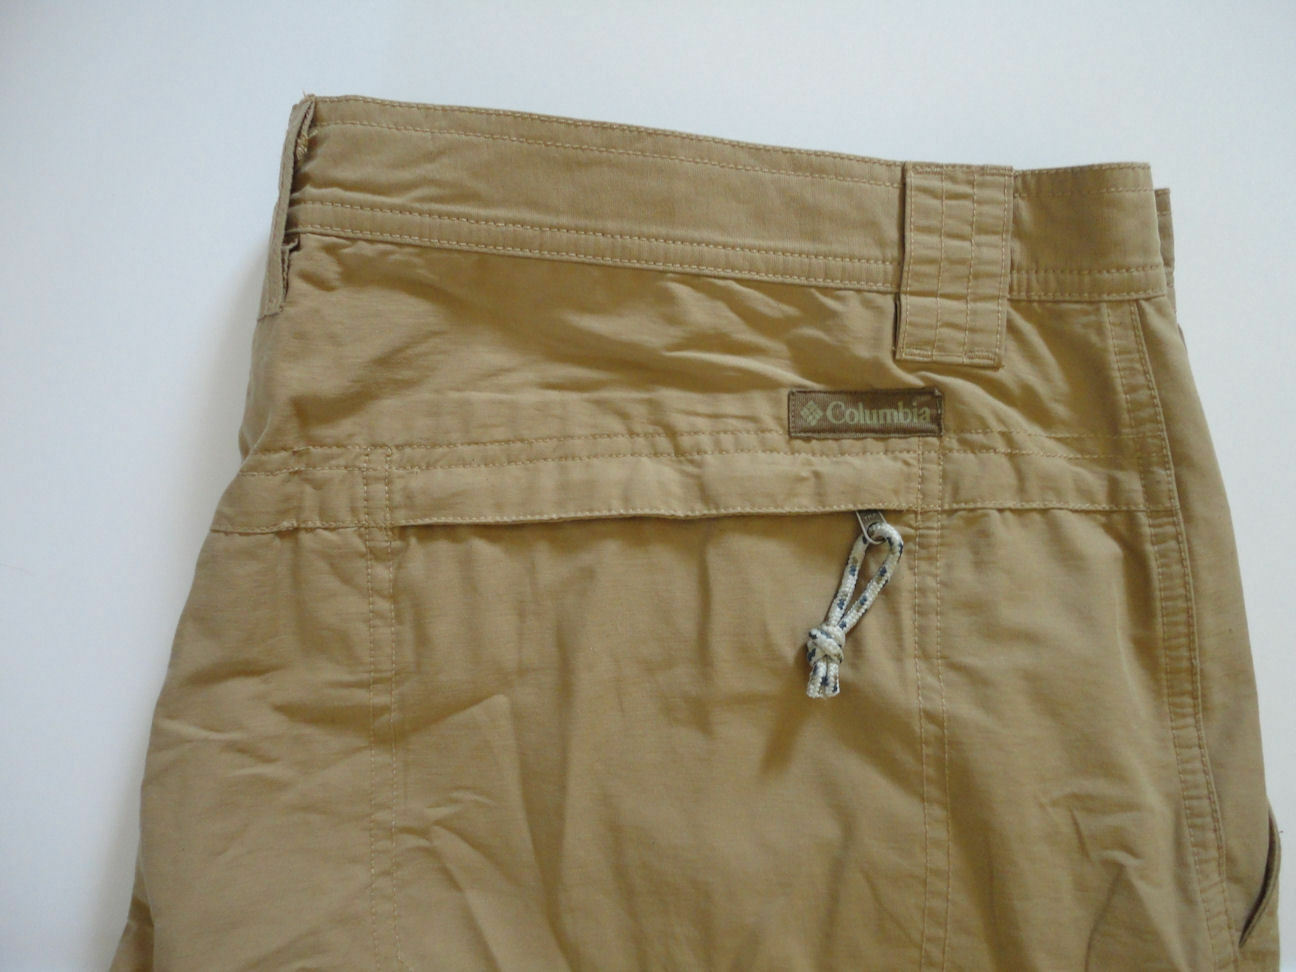 Columbia Omni Shade Trail Pants in Delta Brown 44W x 32L FREE SHIPPING NWOT